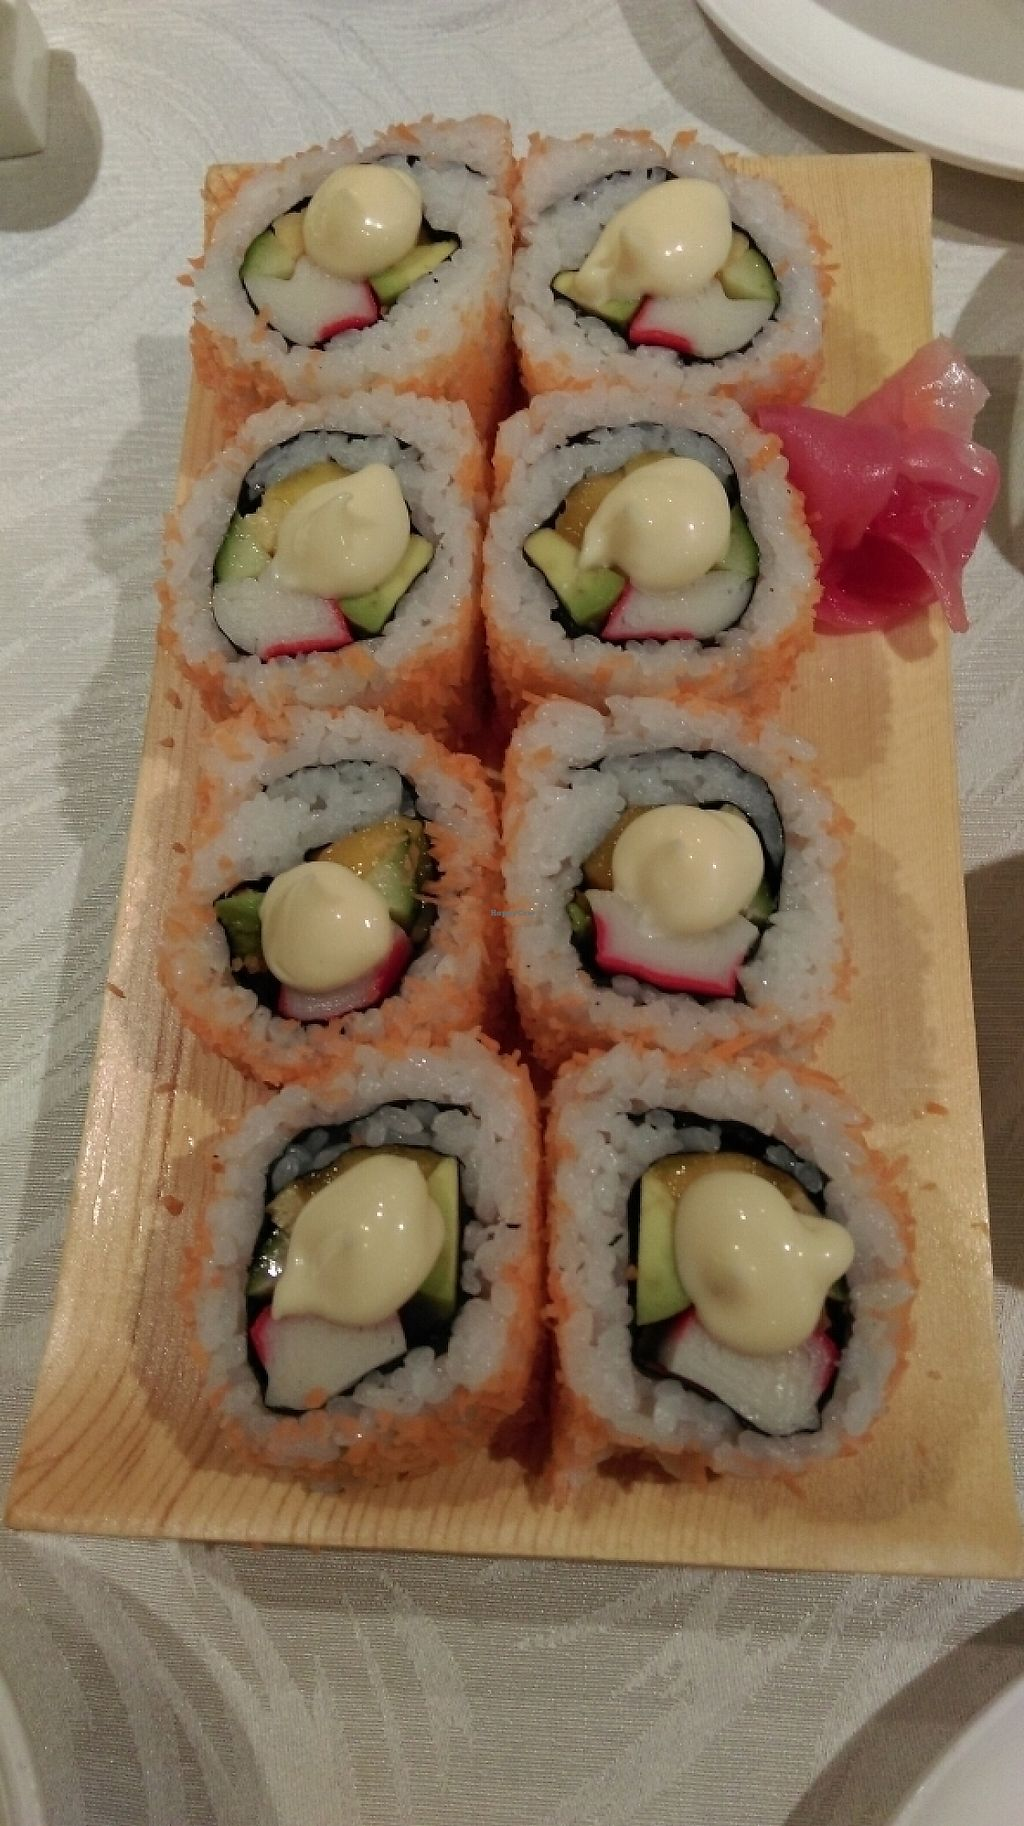 """Photo of Tong De Veggie  by <a href=""""/members/profile/JustinRogers"""">JustinRogers</a> <br/>California rolls <br/> May 24, 2017  - <a href='/contact/abuse/image/91710/261999'>Report</a>"""